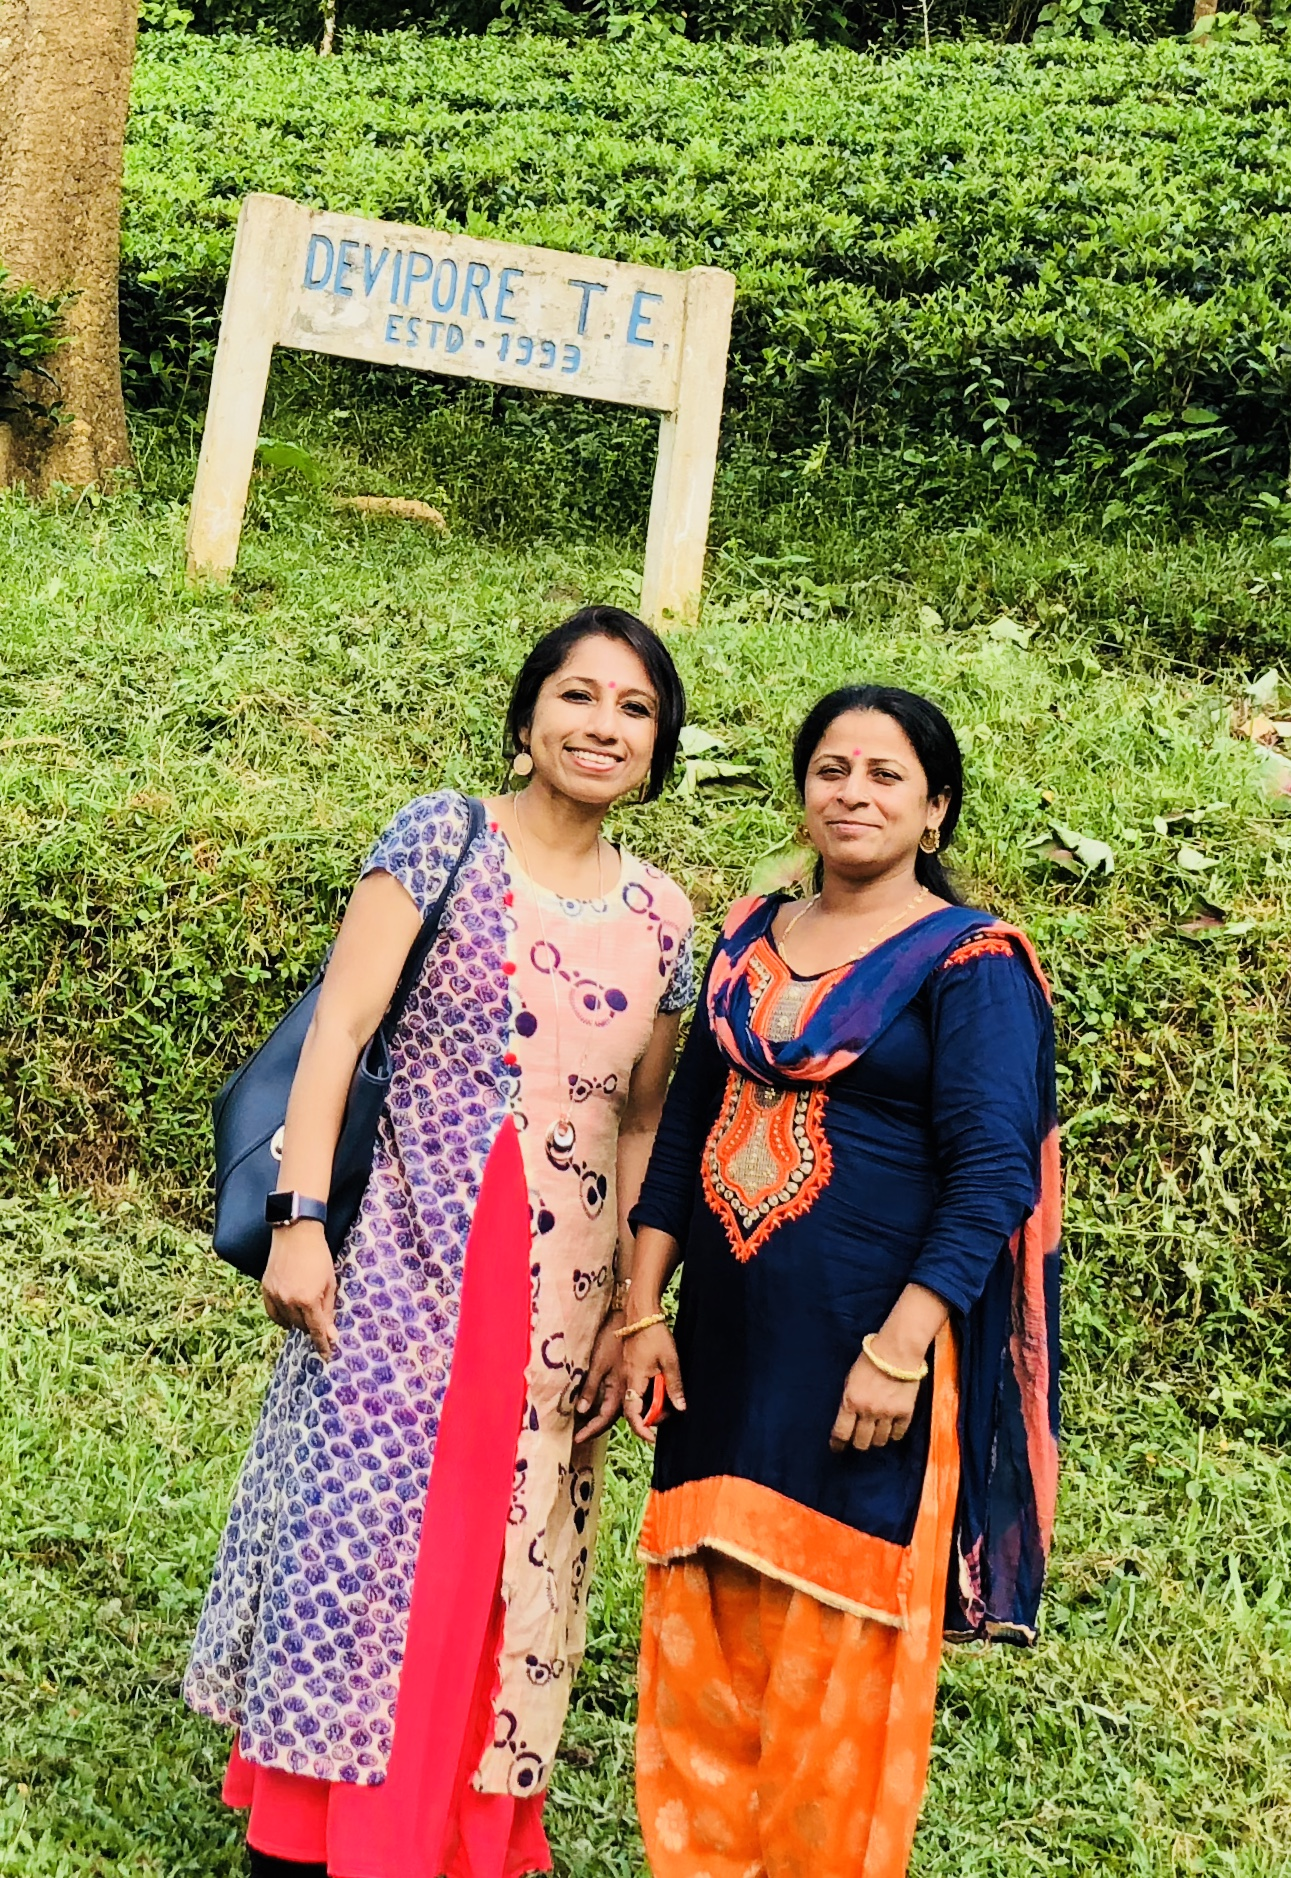 Mr. Deb introduced me to Ms. Beauty Malakar, Auxiliary Nurse Midwife (ANM) who was with me all throughout, learned the process of Breast self exam and also took the responsibility of reaching out to others in the village. She also took the accountability of helping the villagers if they came up with Breast abnormalities and giving them directions where to go next.